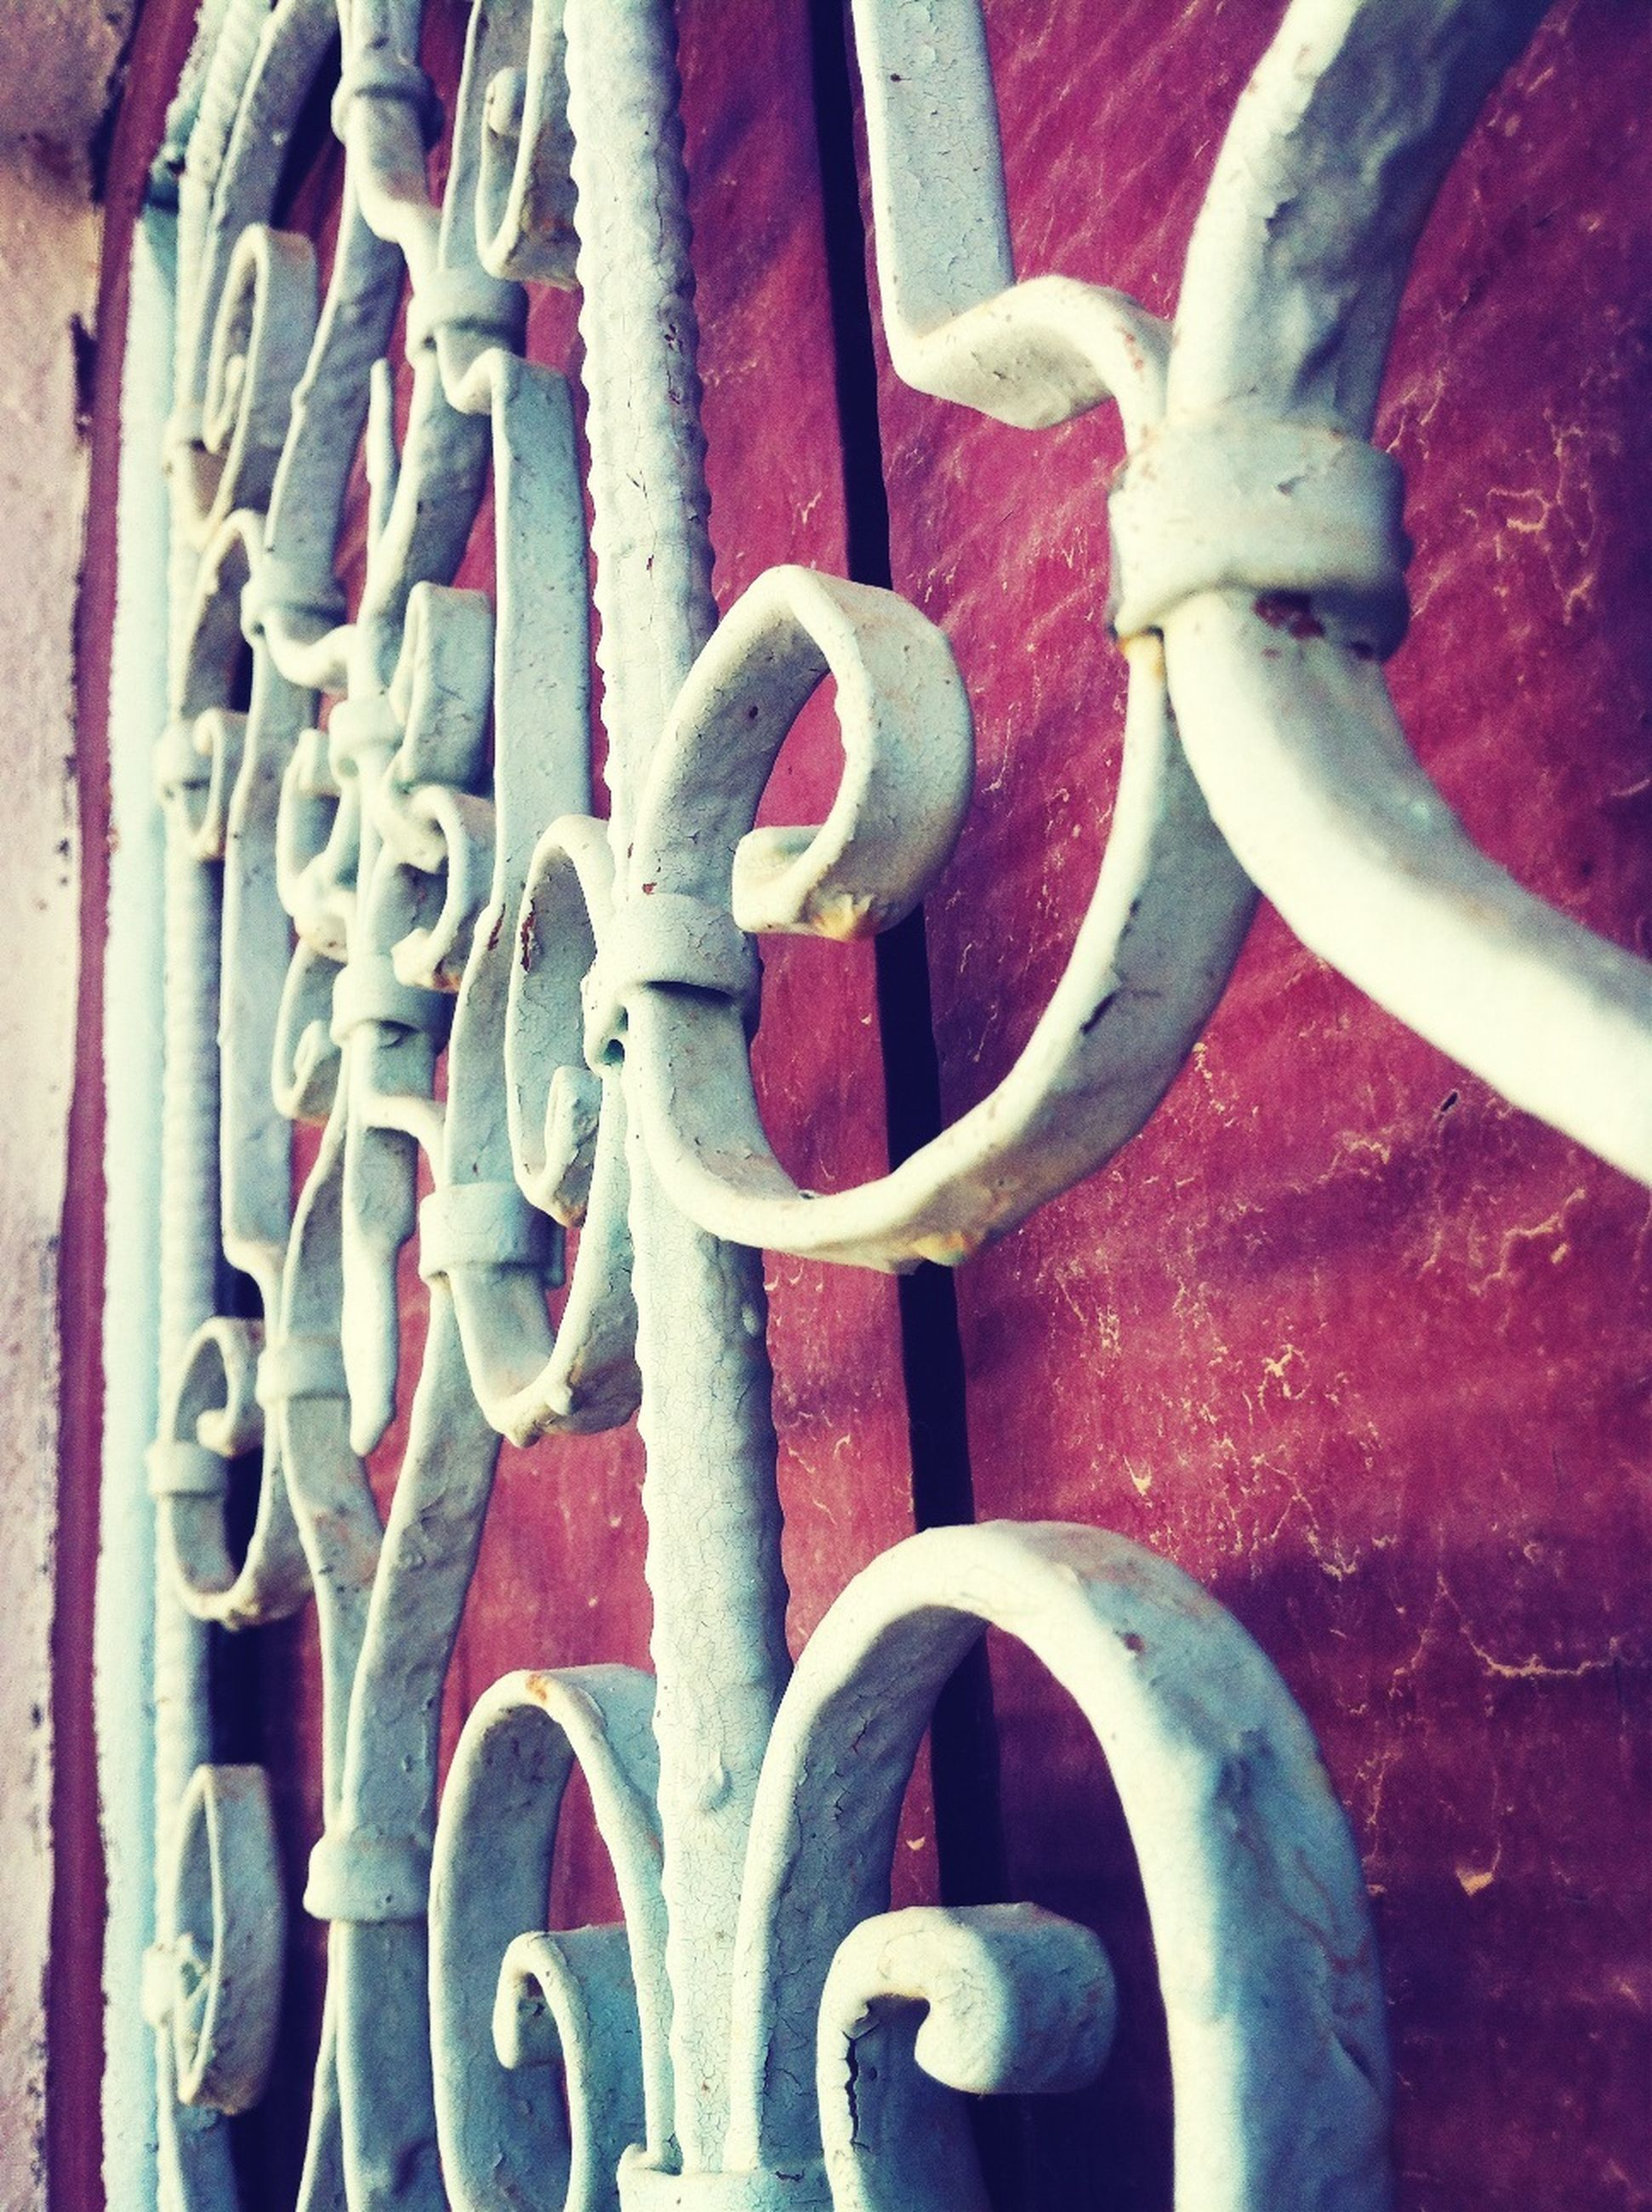 metal, close-up, red, metallic, rusty, safety, no people, pattern, protection, circle, day, full frame, wall - building feature, built structure, part of, outdoors, design, security, architecture, railing